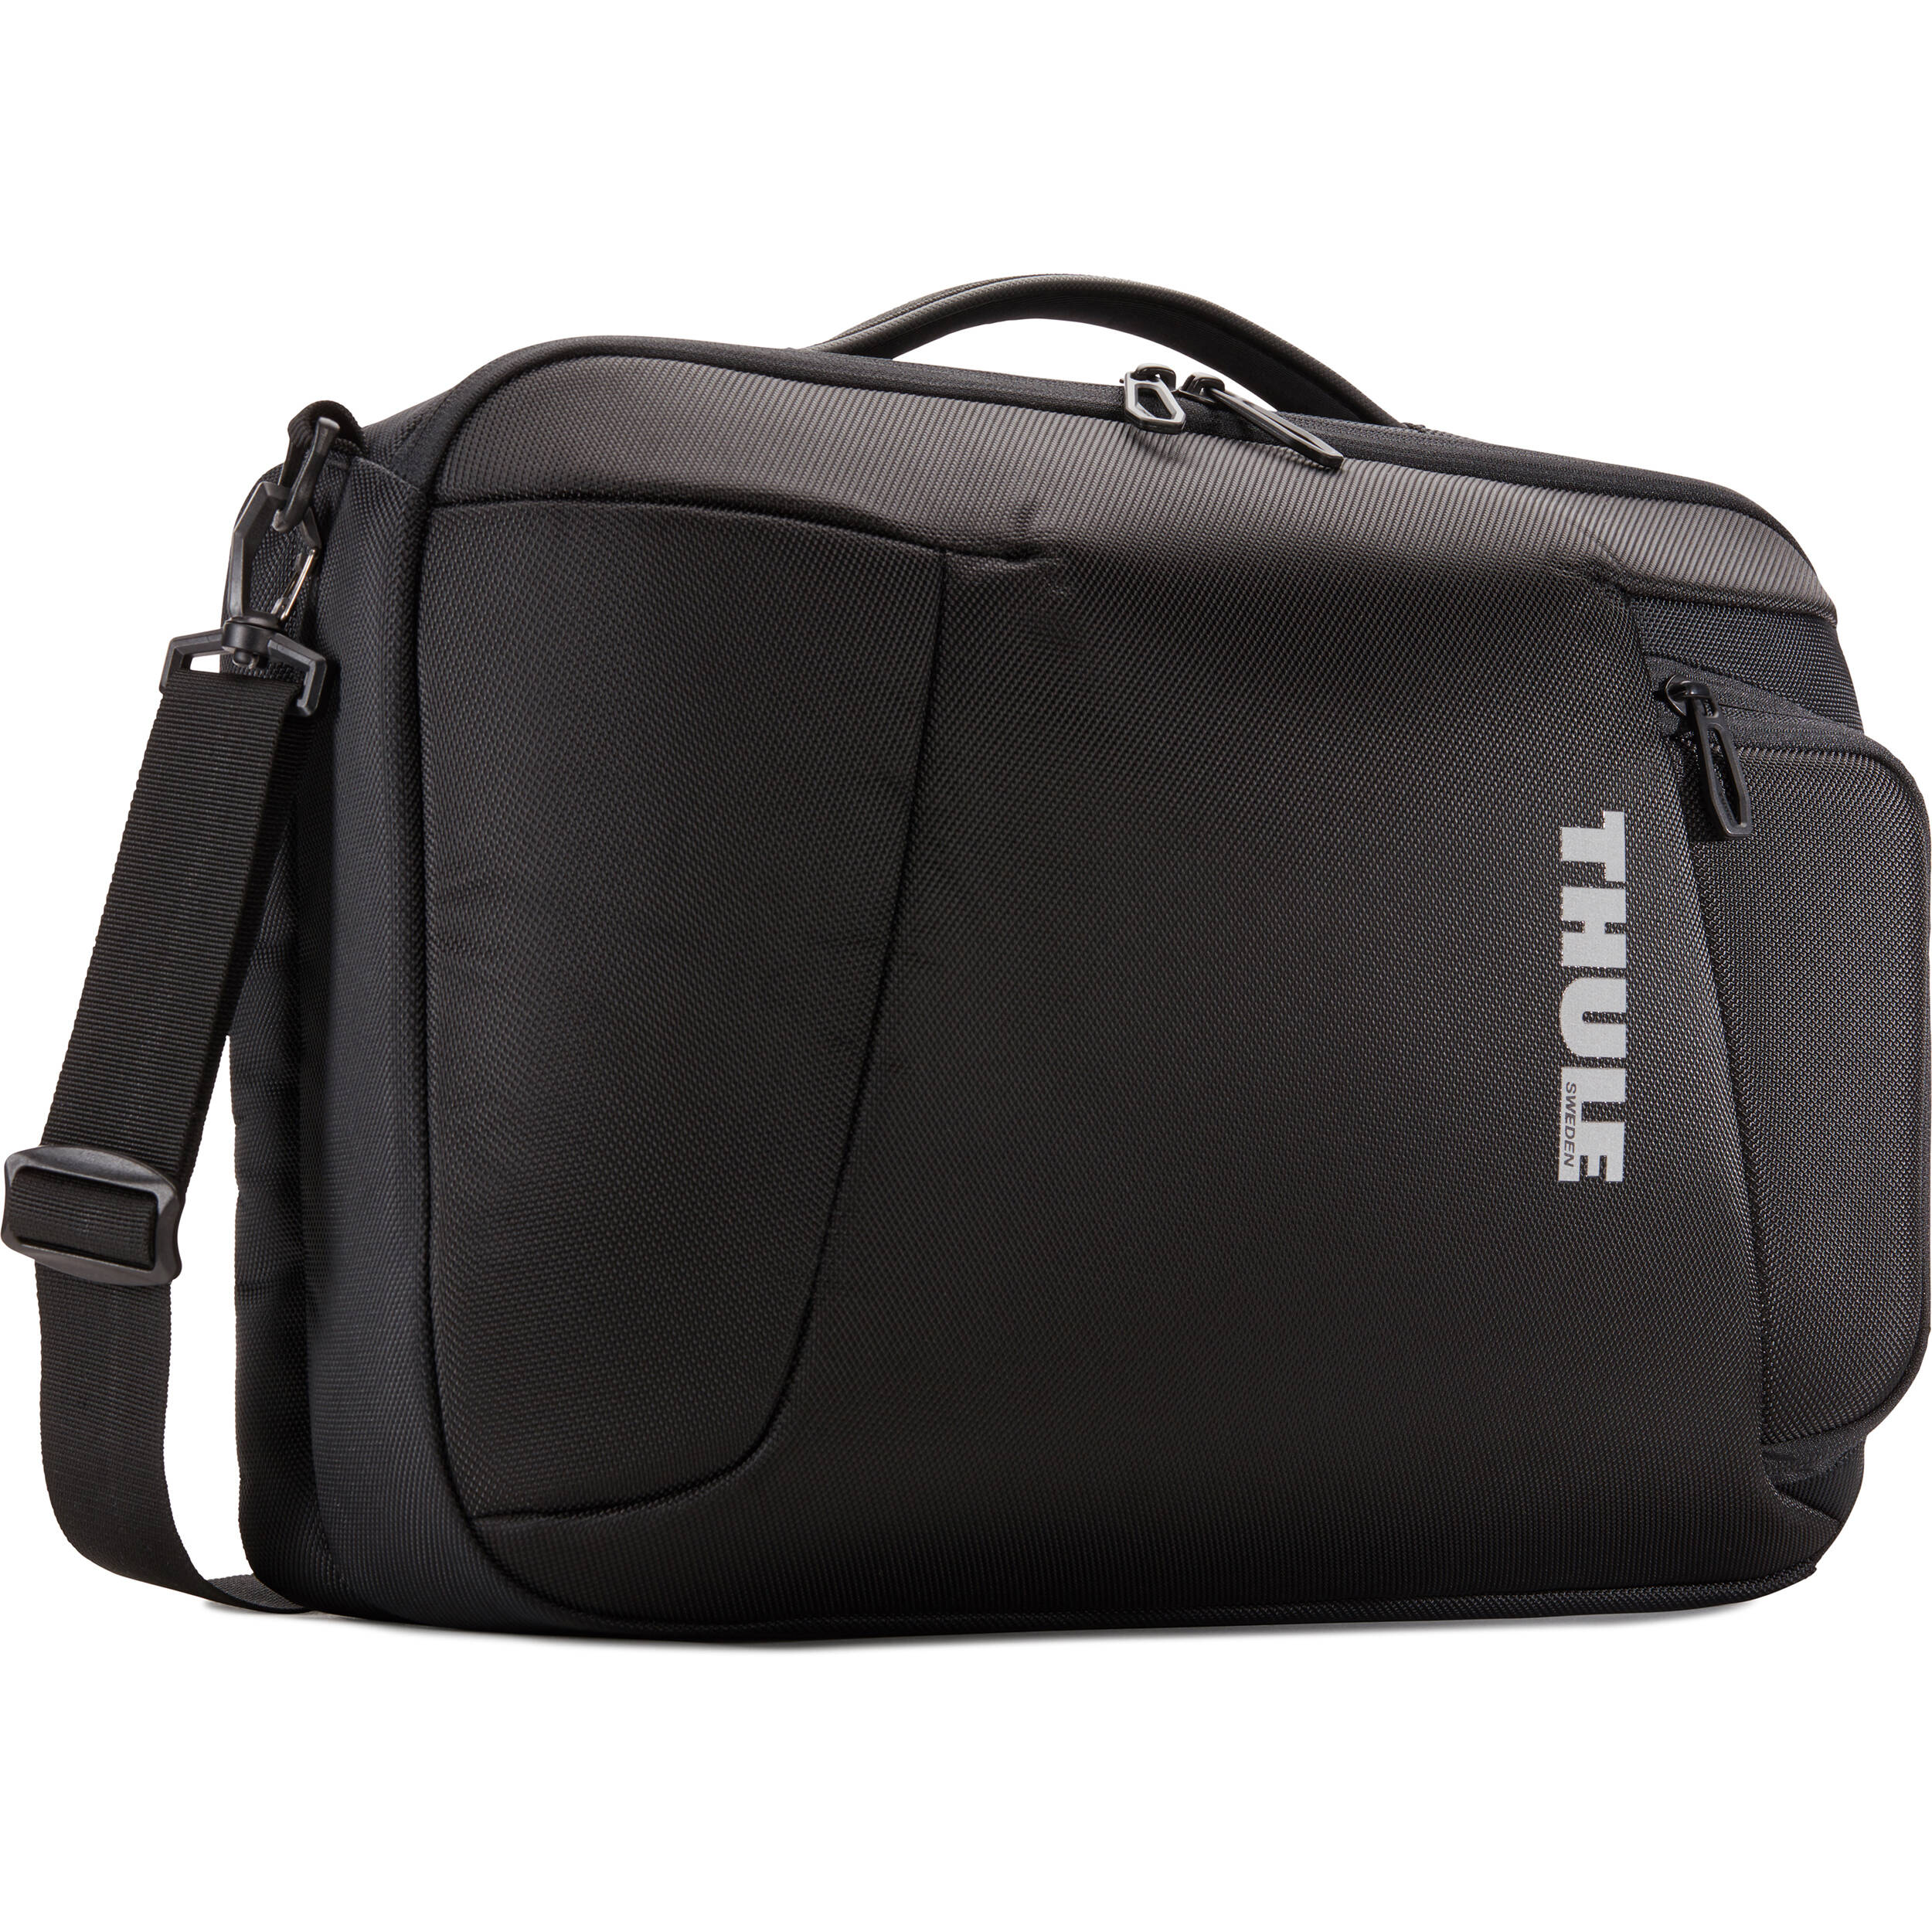 299a6437bf6c Thule Accent 2-in-1 Laptop Bag (Black)